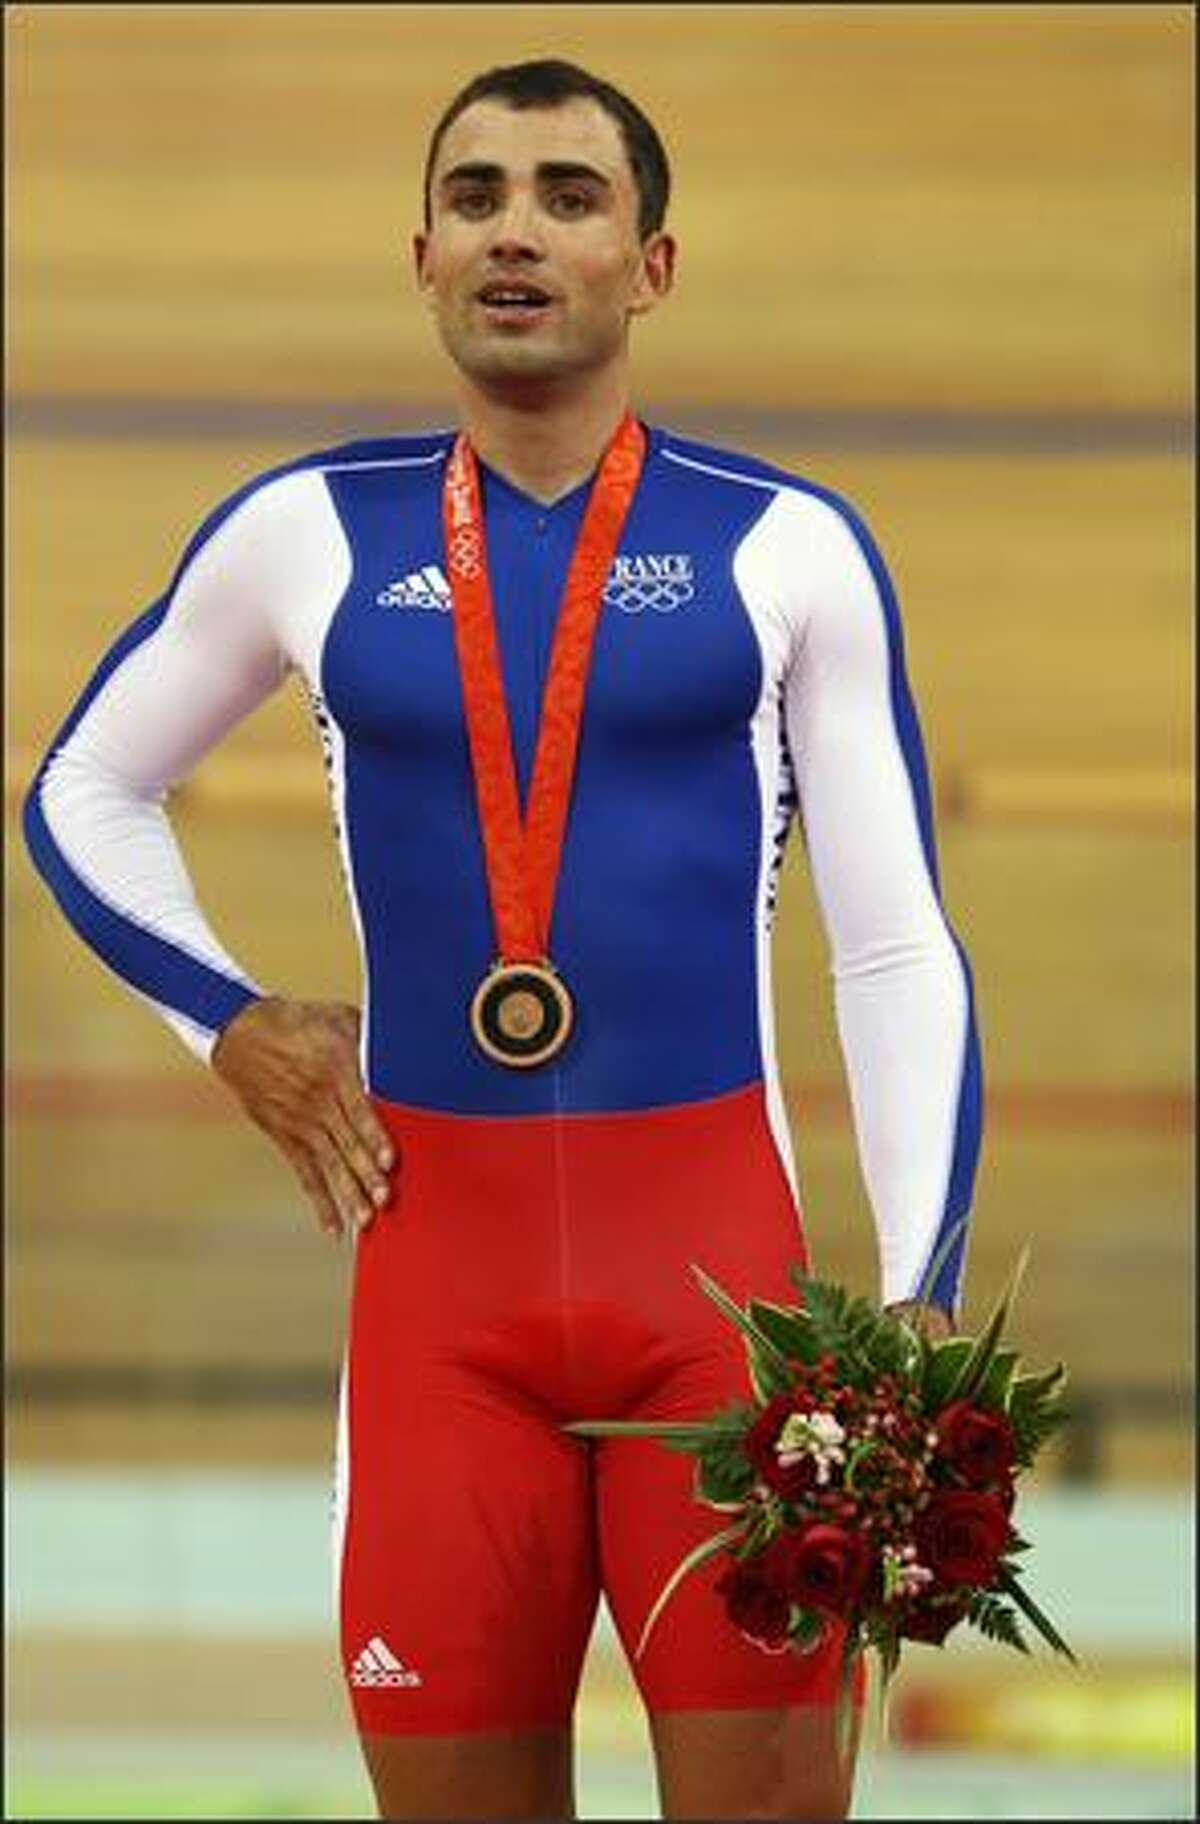 Bronze medalist Mickael Bourgain of France poses after the Men's Sprint Finals in the track cycling event at the Laoshan Velodrome on Day 11 of the Beijing 2008 Olympic Games on Tuesday.